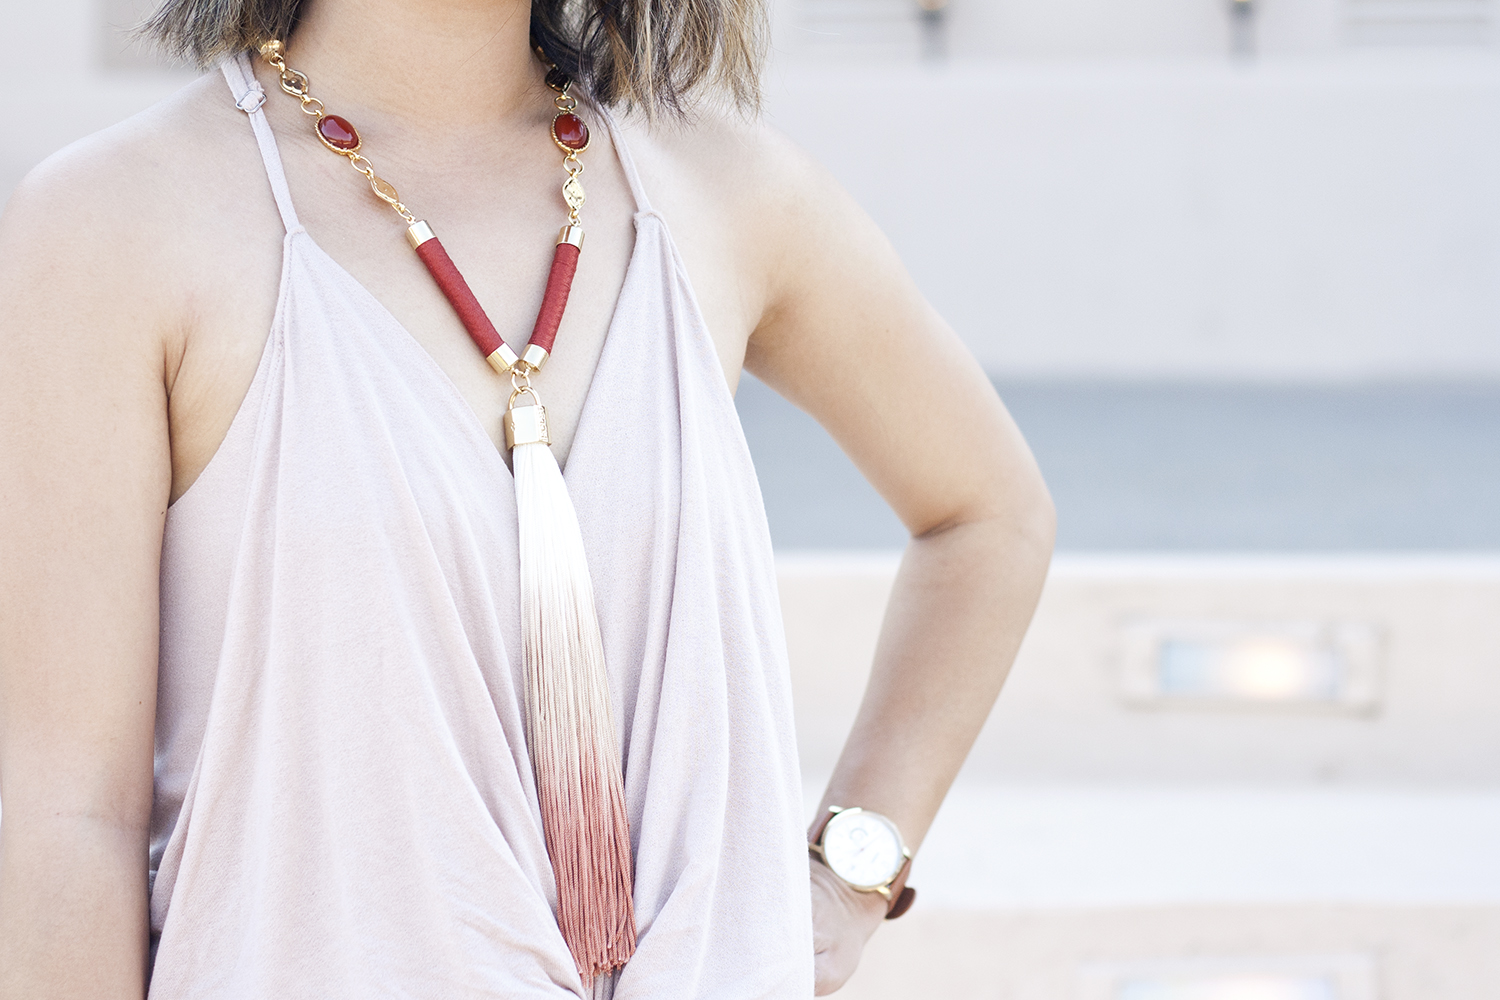 08napa-holstandlee-tassel-ombre-jewelry-travel-fashion-style